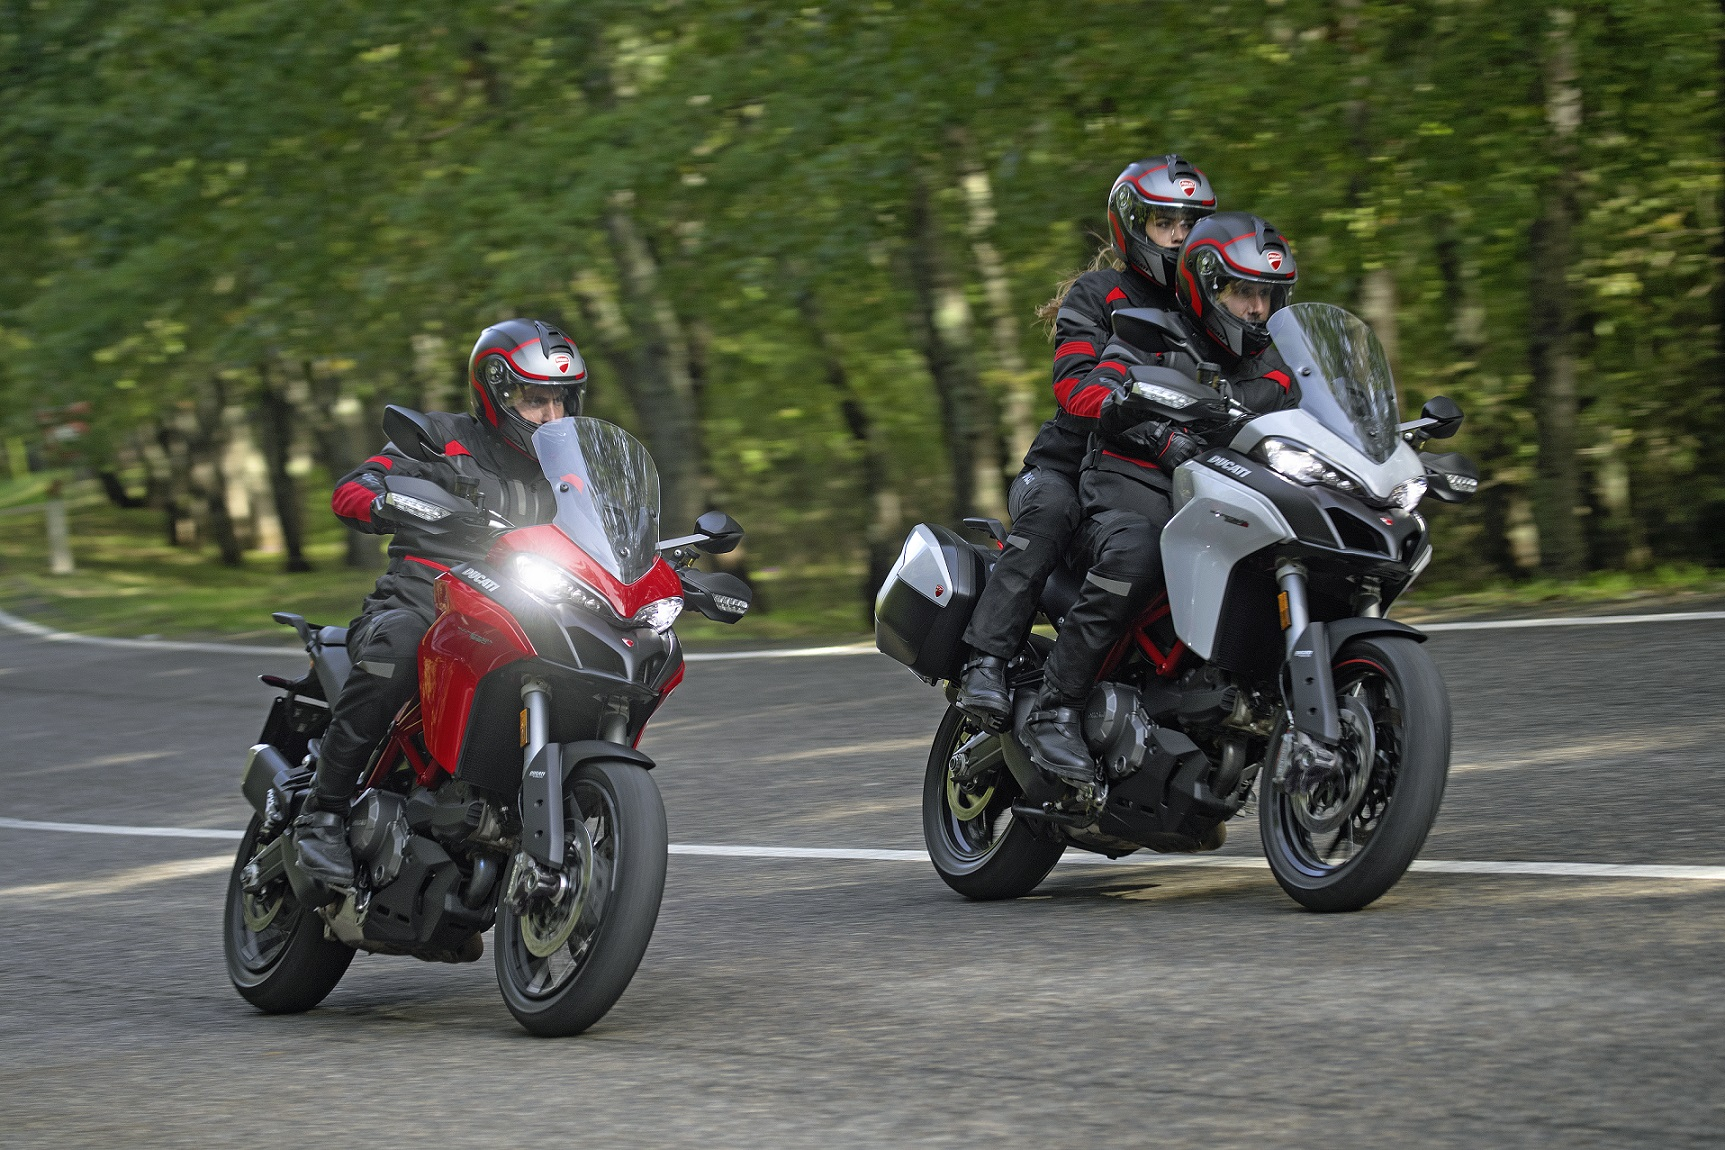 Ducati Launches Its BS6 Multistrada 950 S in India